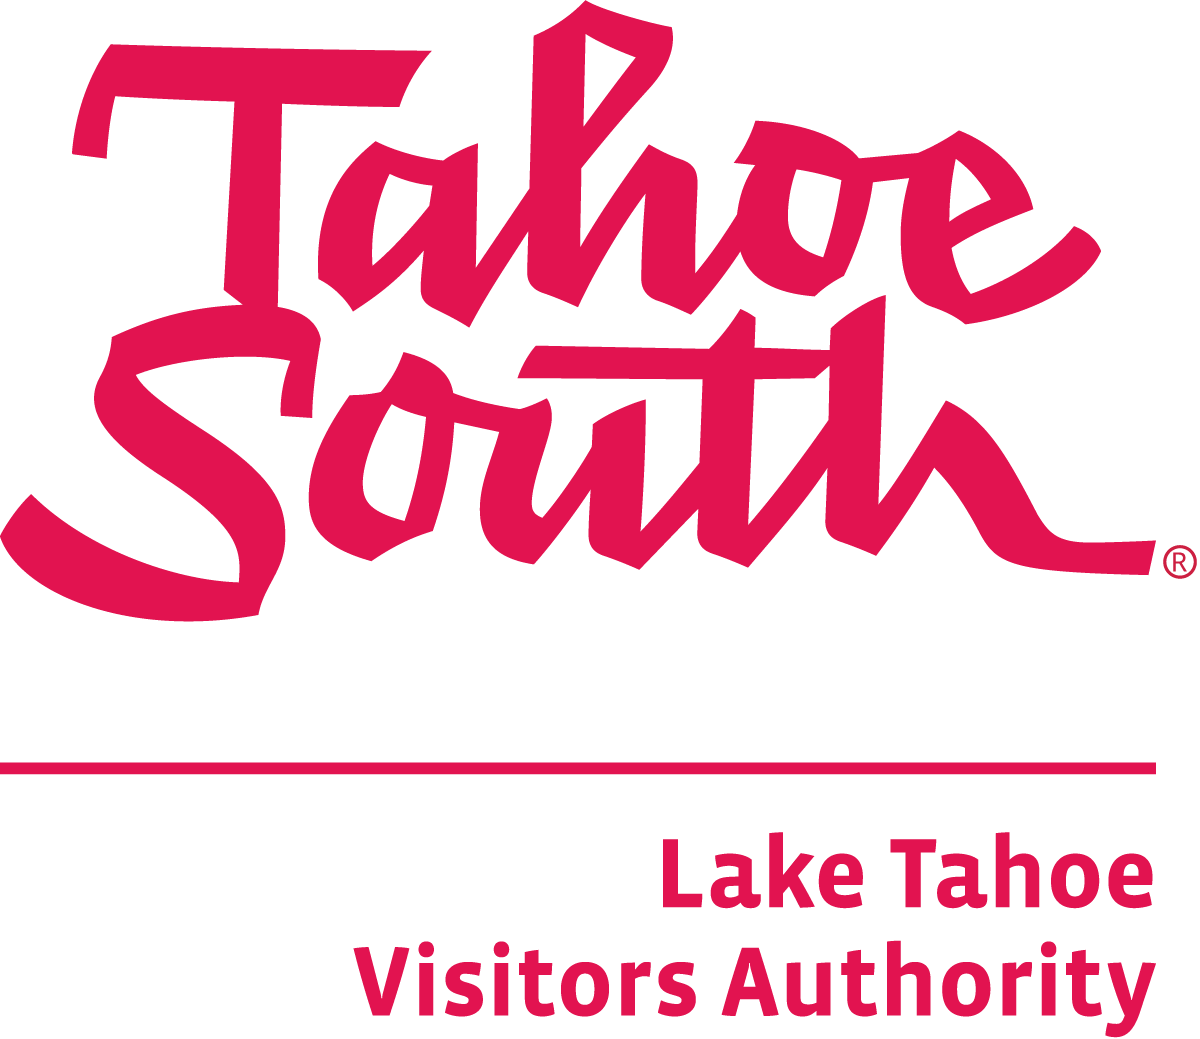 Tahoe South.png